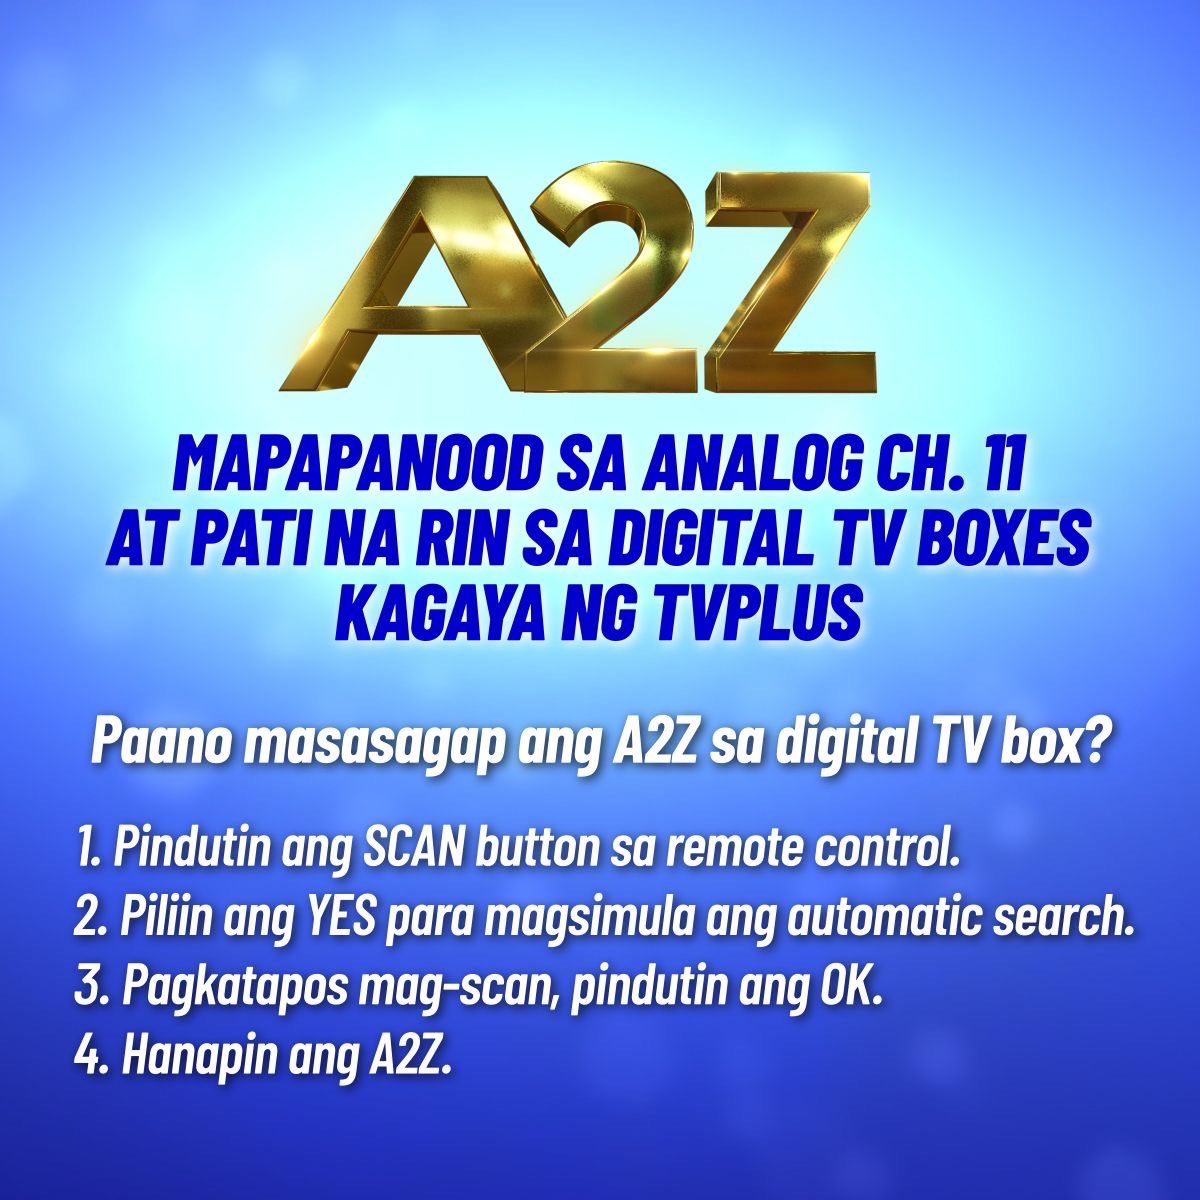 You can now watch A2Z on your TV PLUS! All you have to do is scan 👏🏽